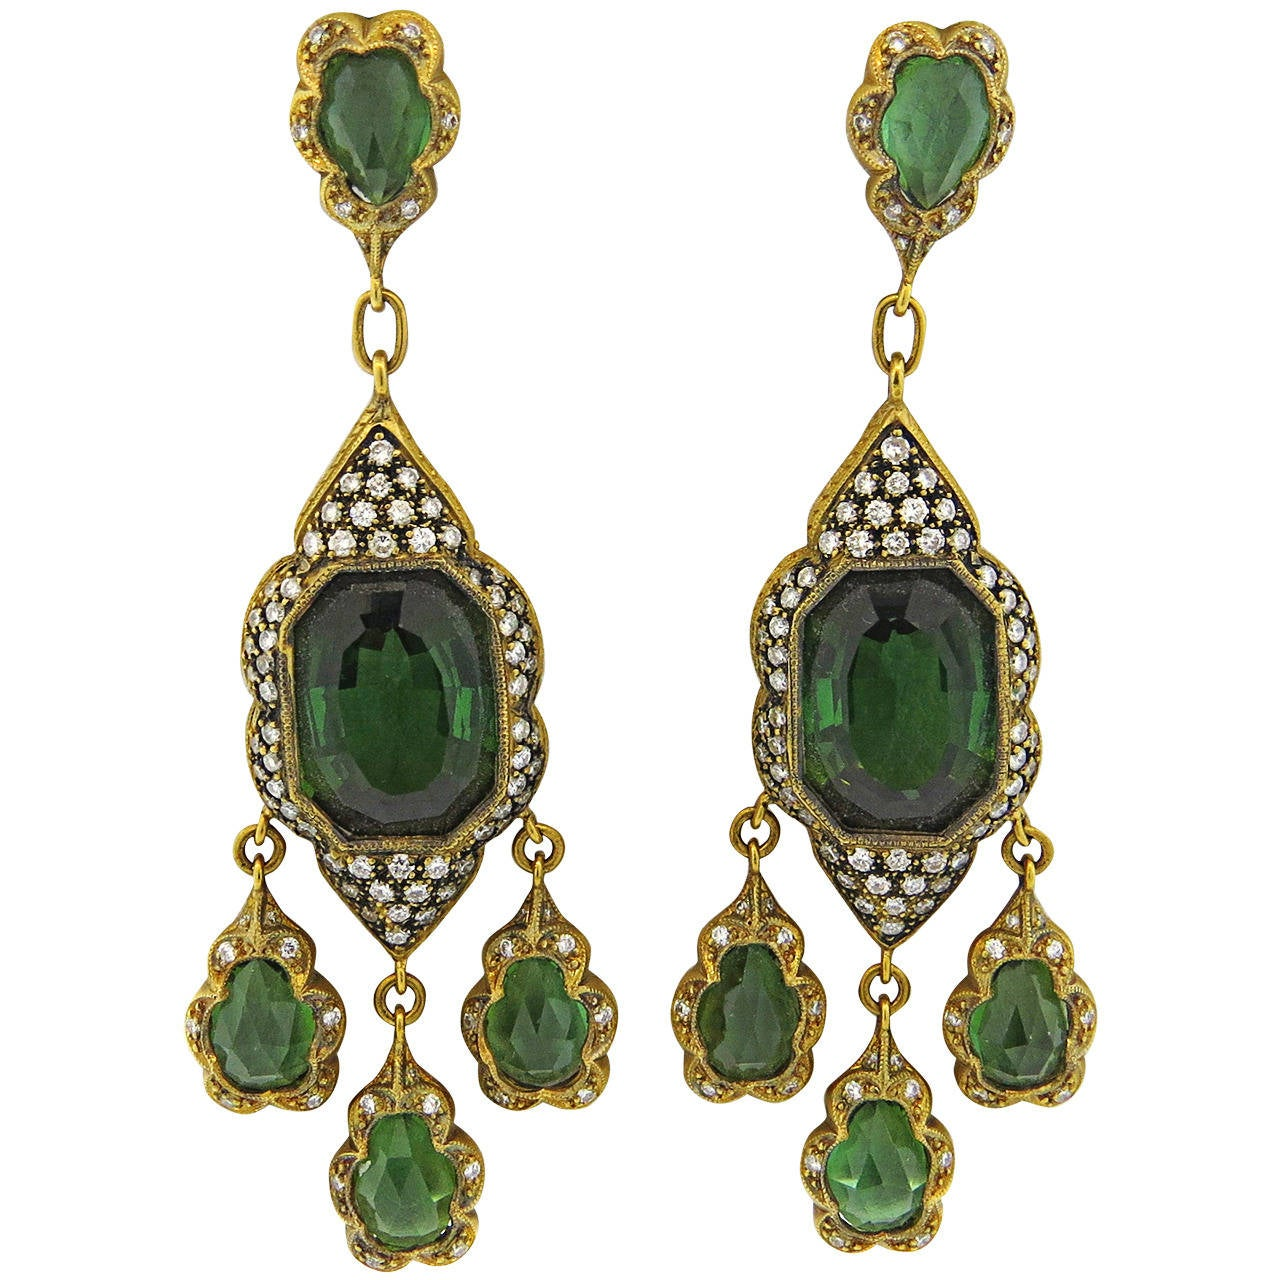 jade amazon dp earrings com gold yellow teardrop jewelry green